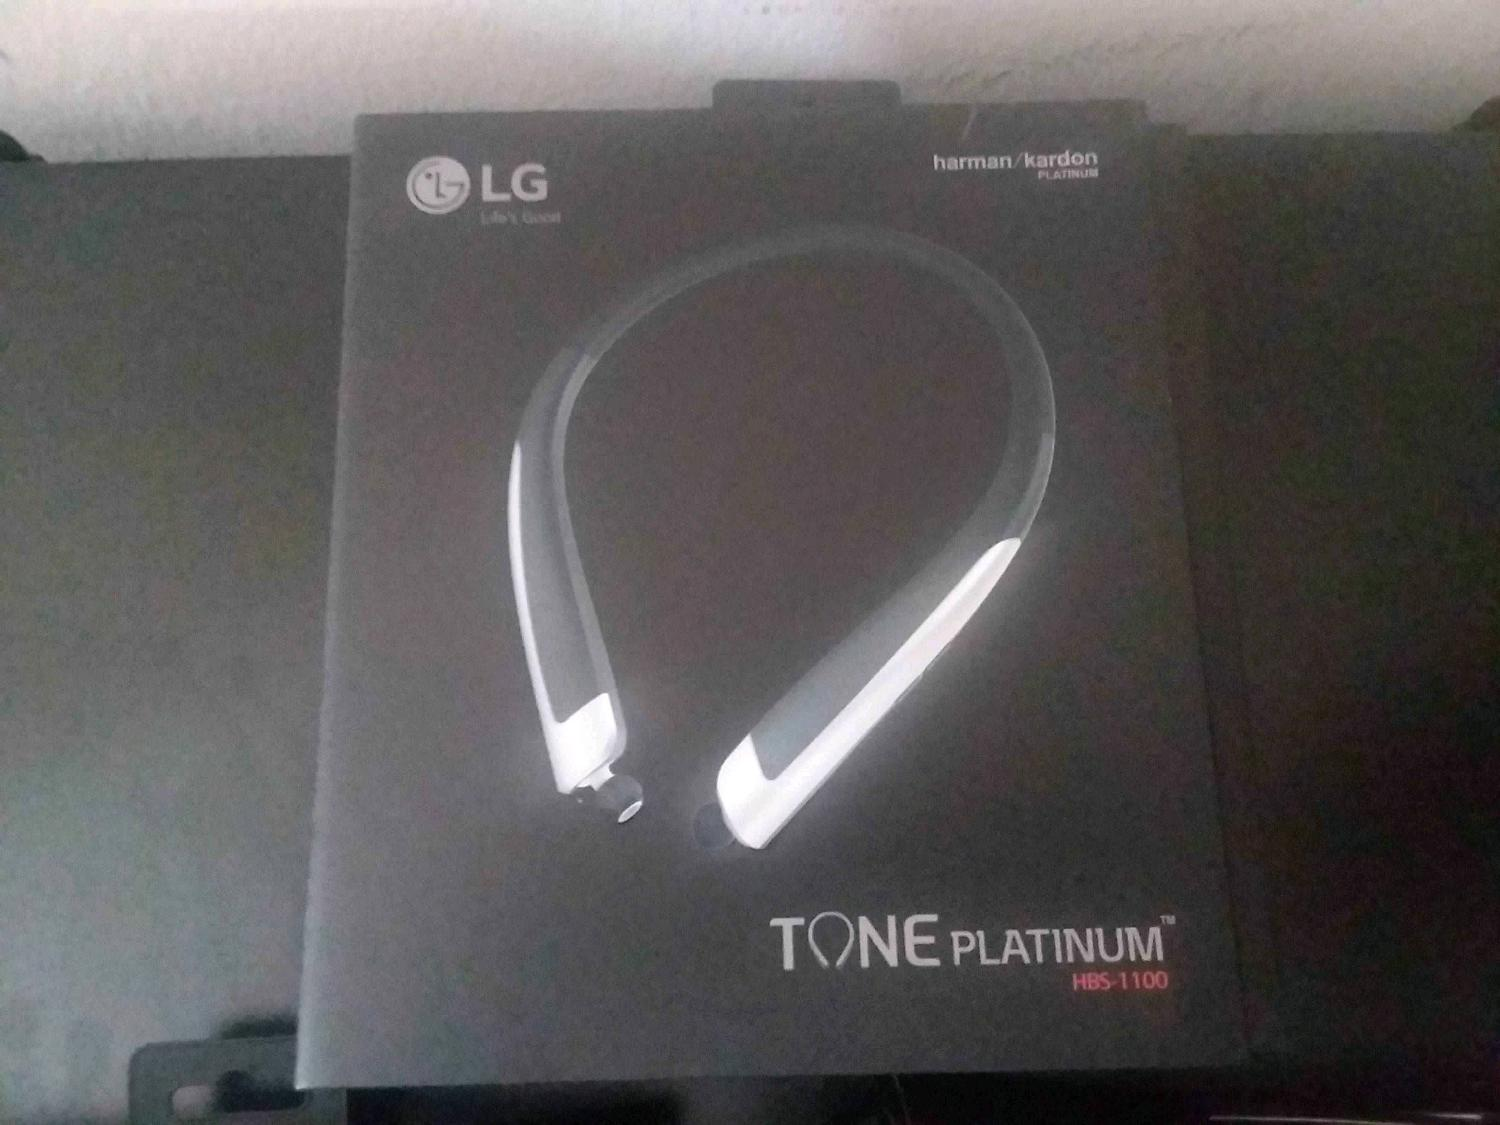 Best Lg Hbs 1100 Wireless Bluetooth Headsets For Sale In Spring Texas For 2020